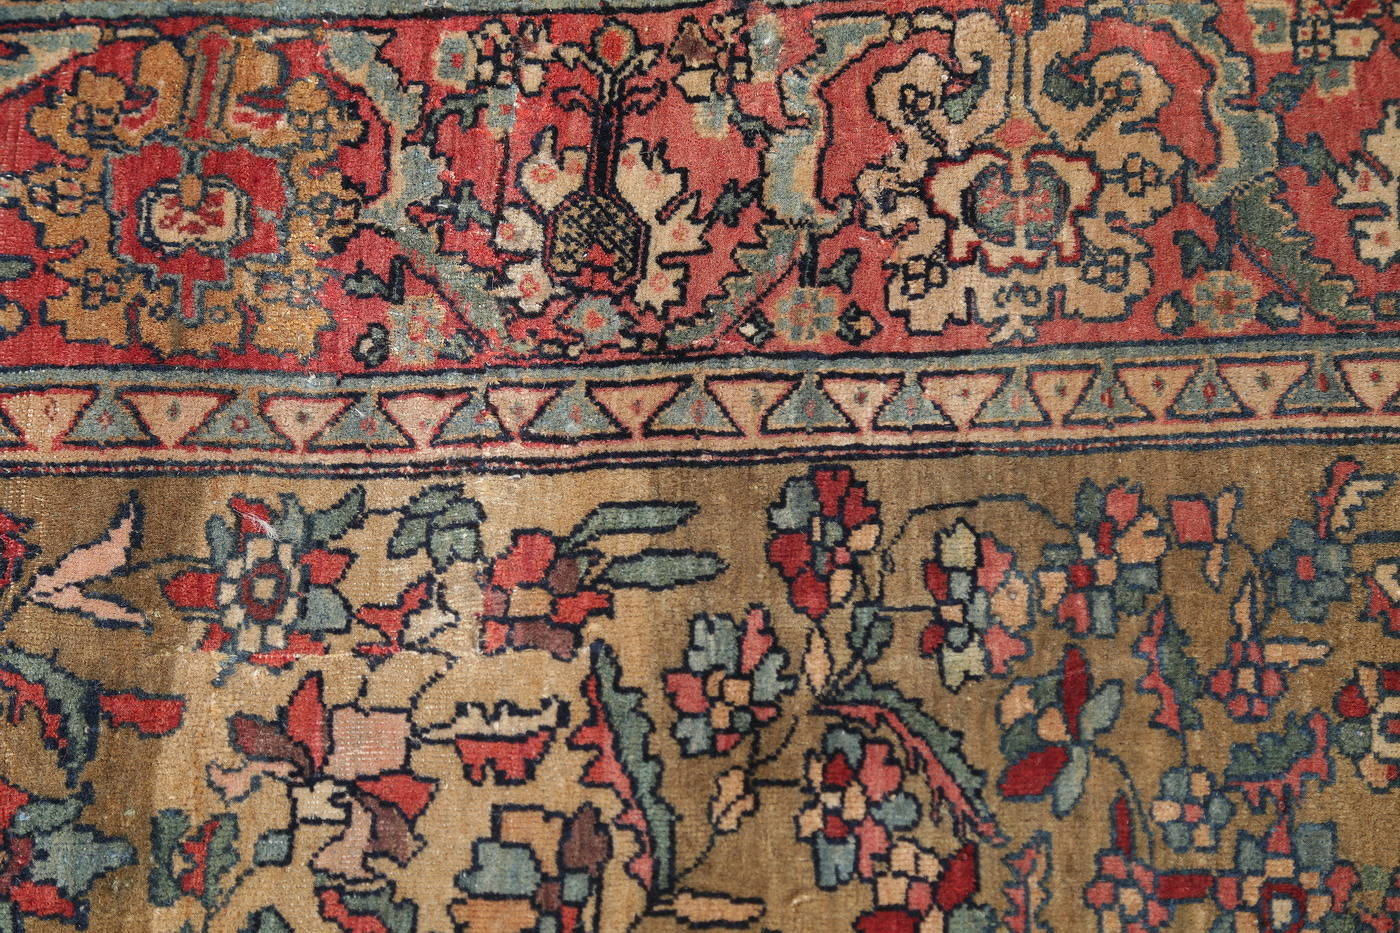 Antique Green Pictorial Kashan Mohtasham Persian Area Rug 4x6 image 9